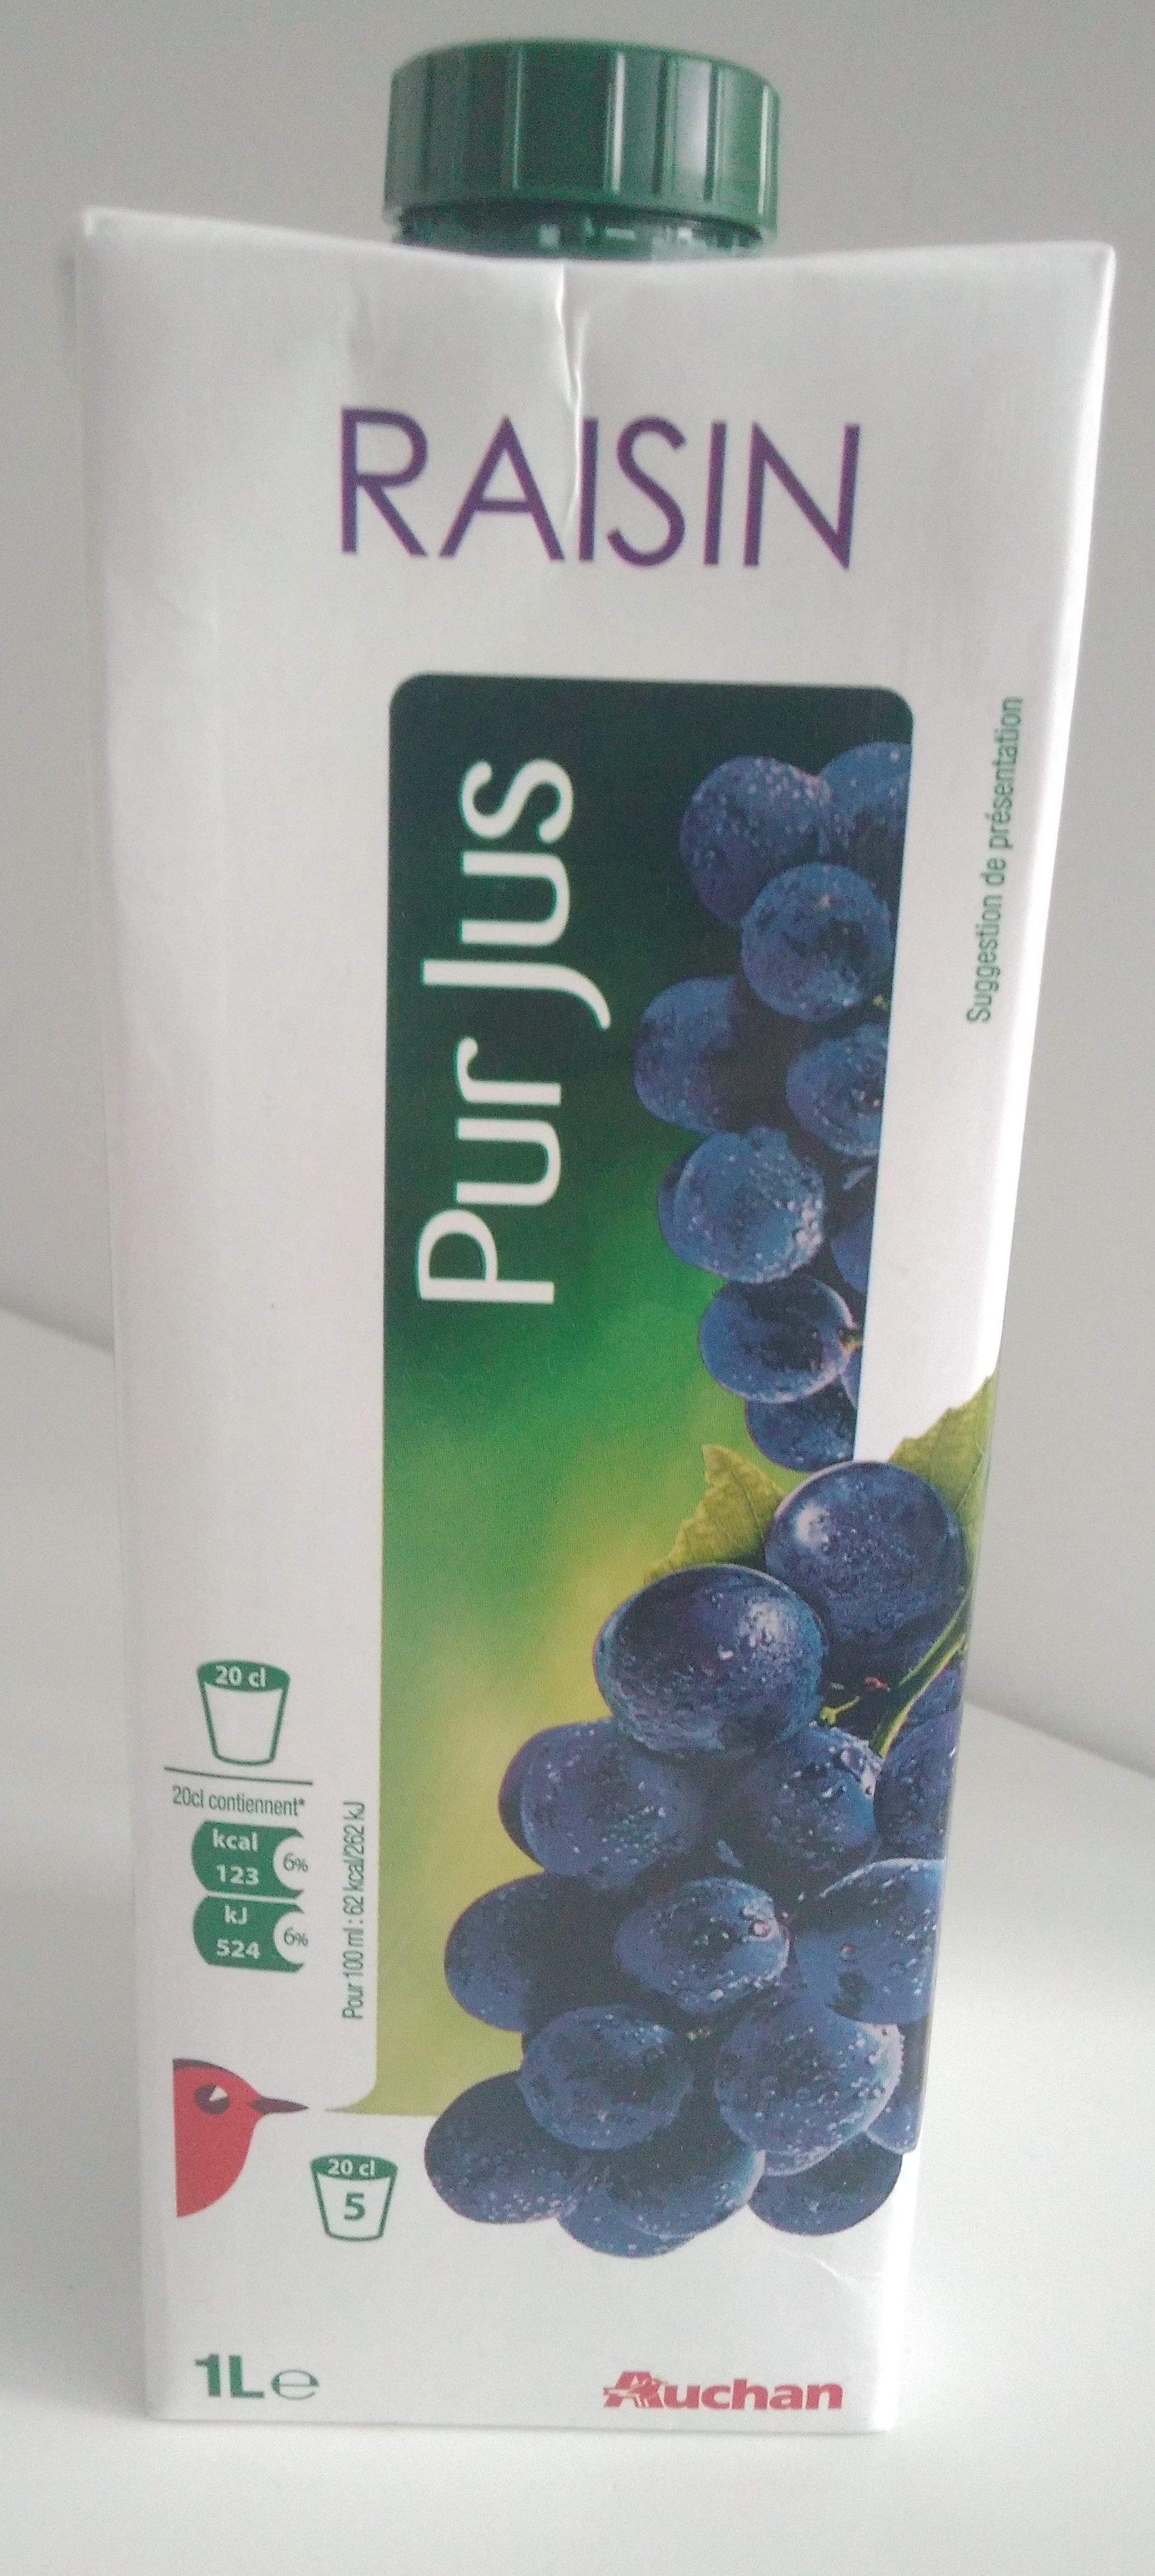 100 % pur jus, raisin - Product